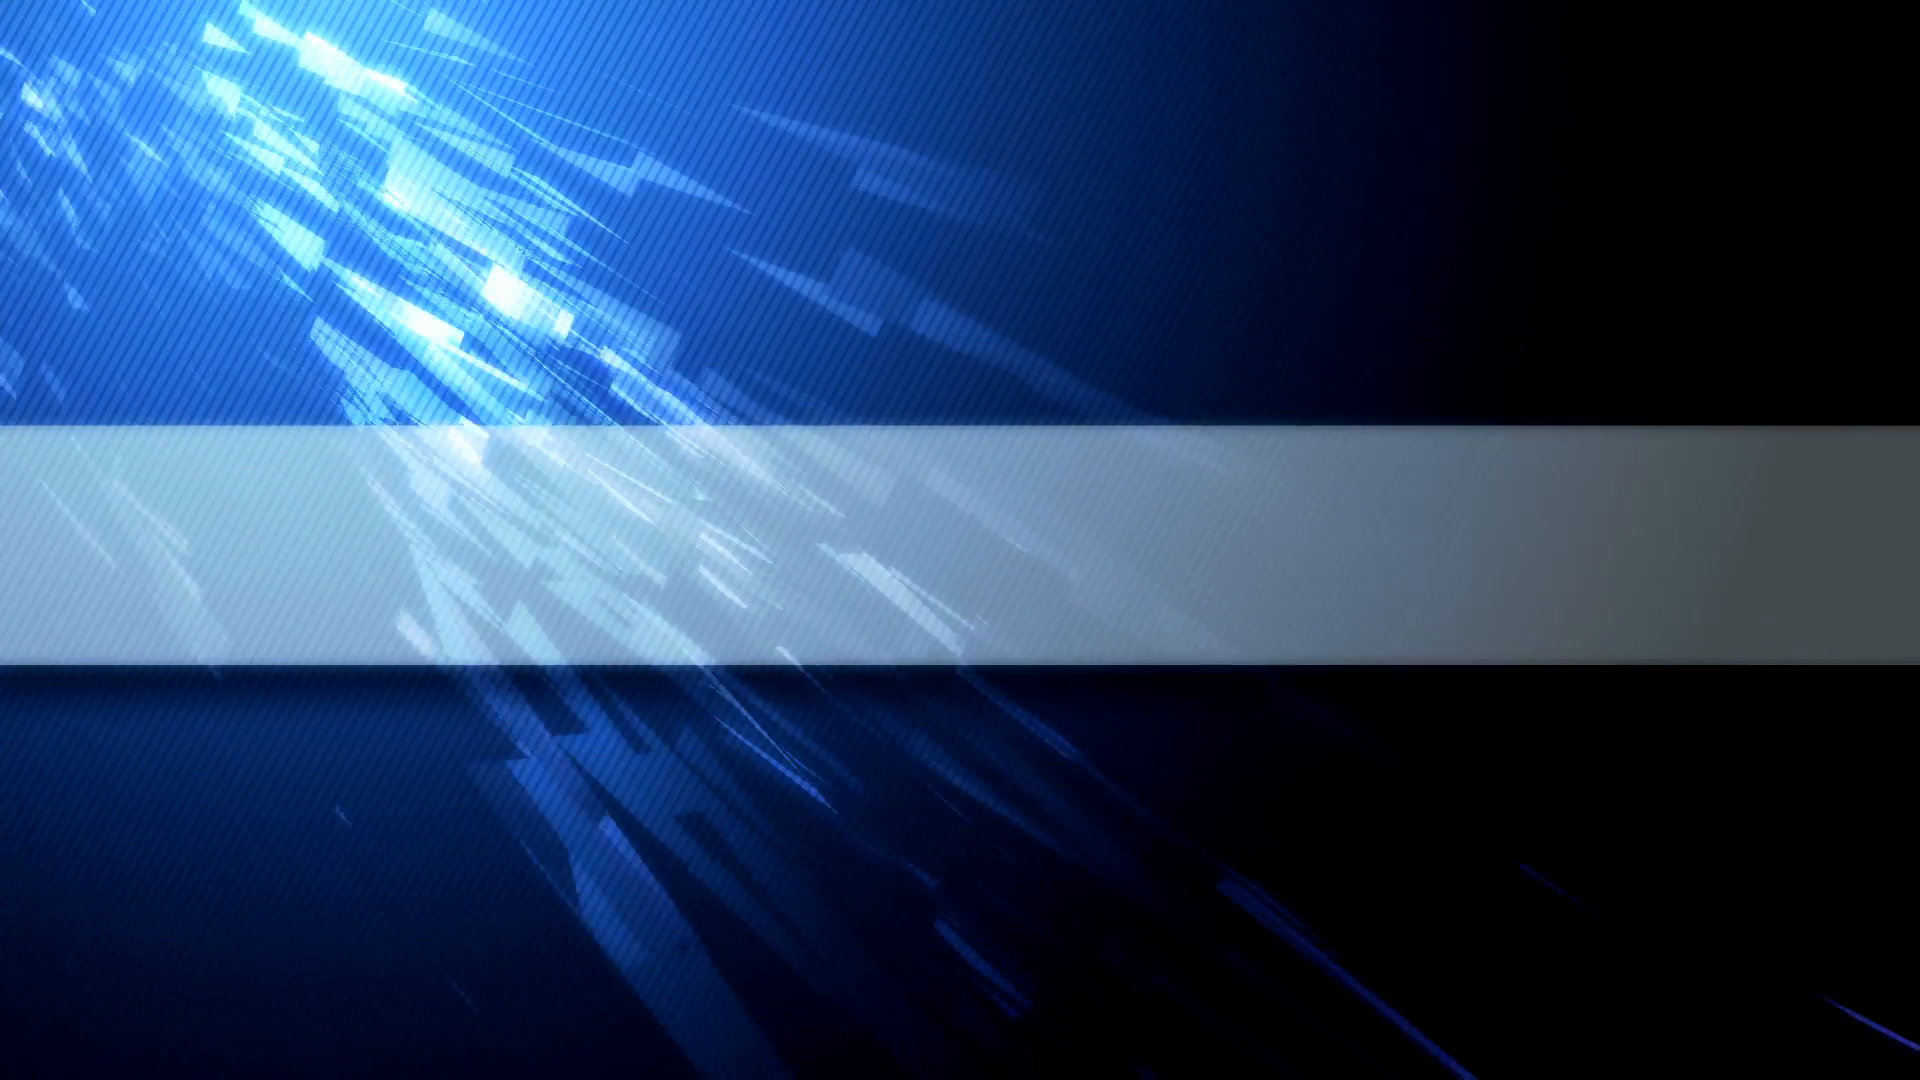 Youtube Banner Template No Text New Blue Abstract Video Background with Copy Space for Your